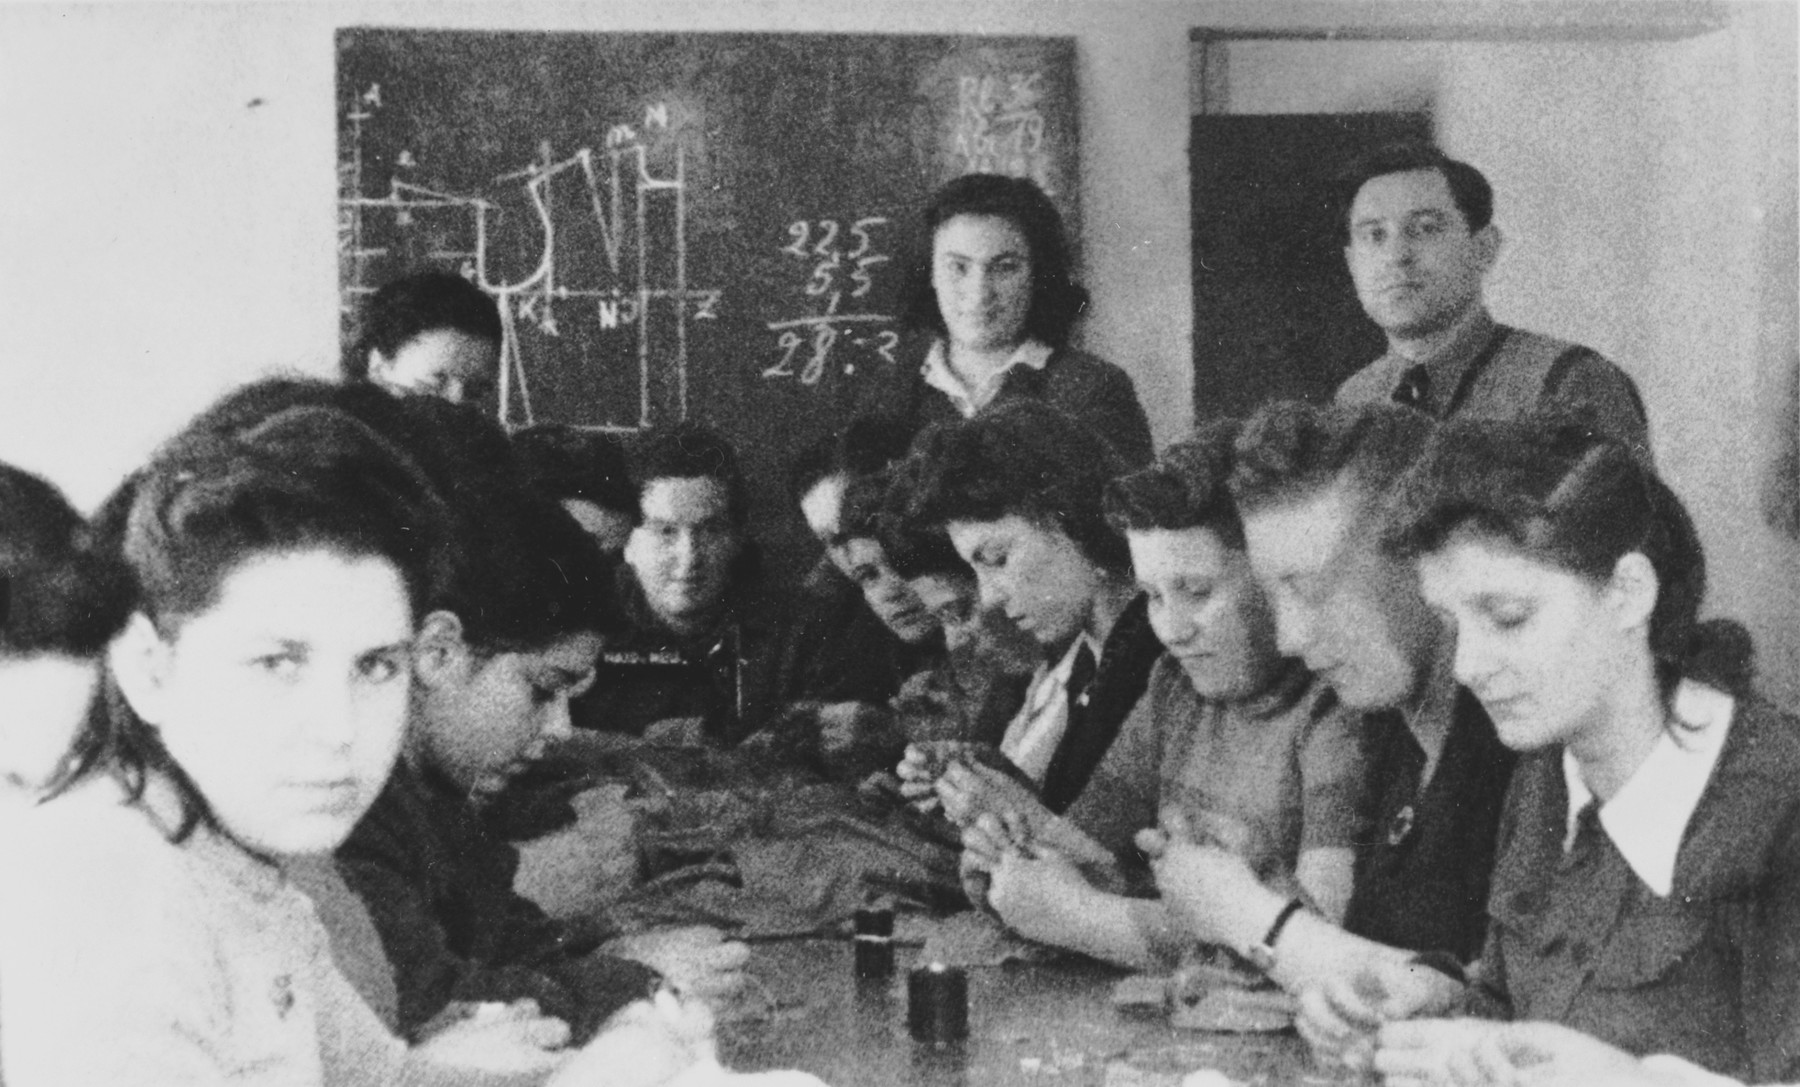 Women study dressmaking in a vocational workshop in either the Foehrenwald or Windsheim displaced persons' camp.